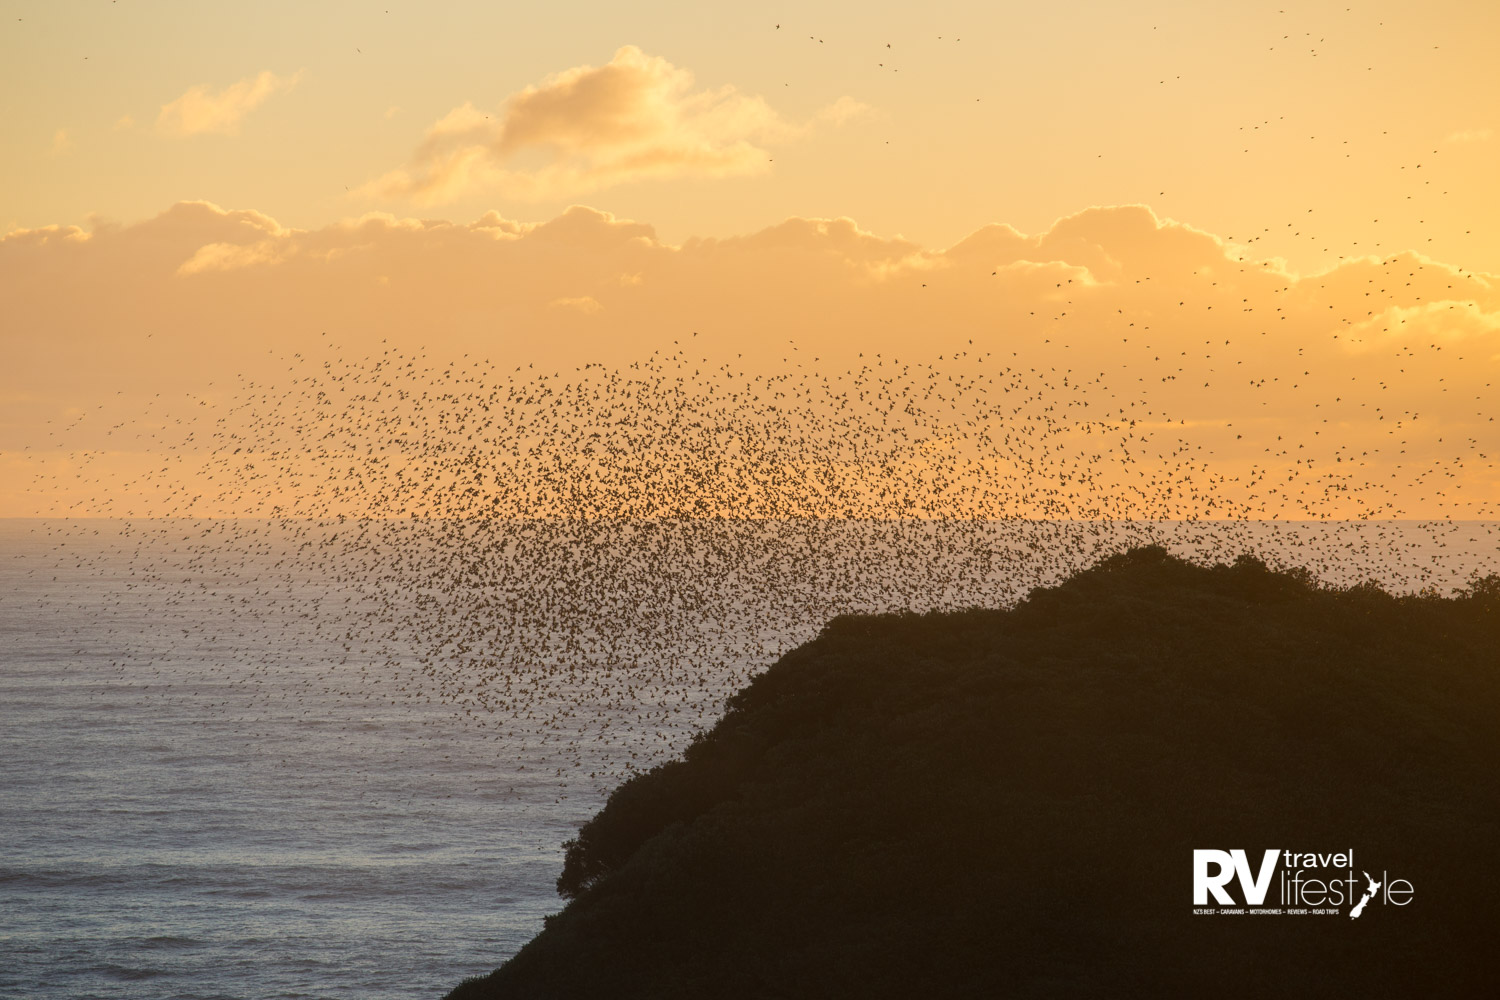 Starlings swarm over Motuotamatea (Snapper Rock)